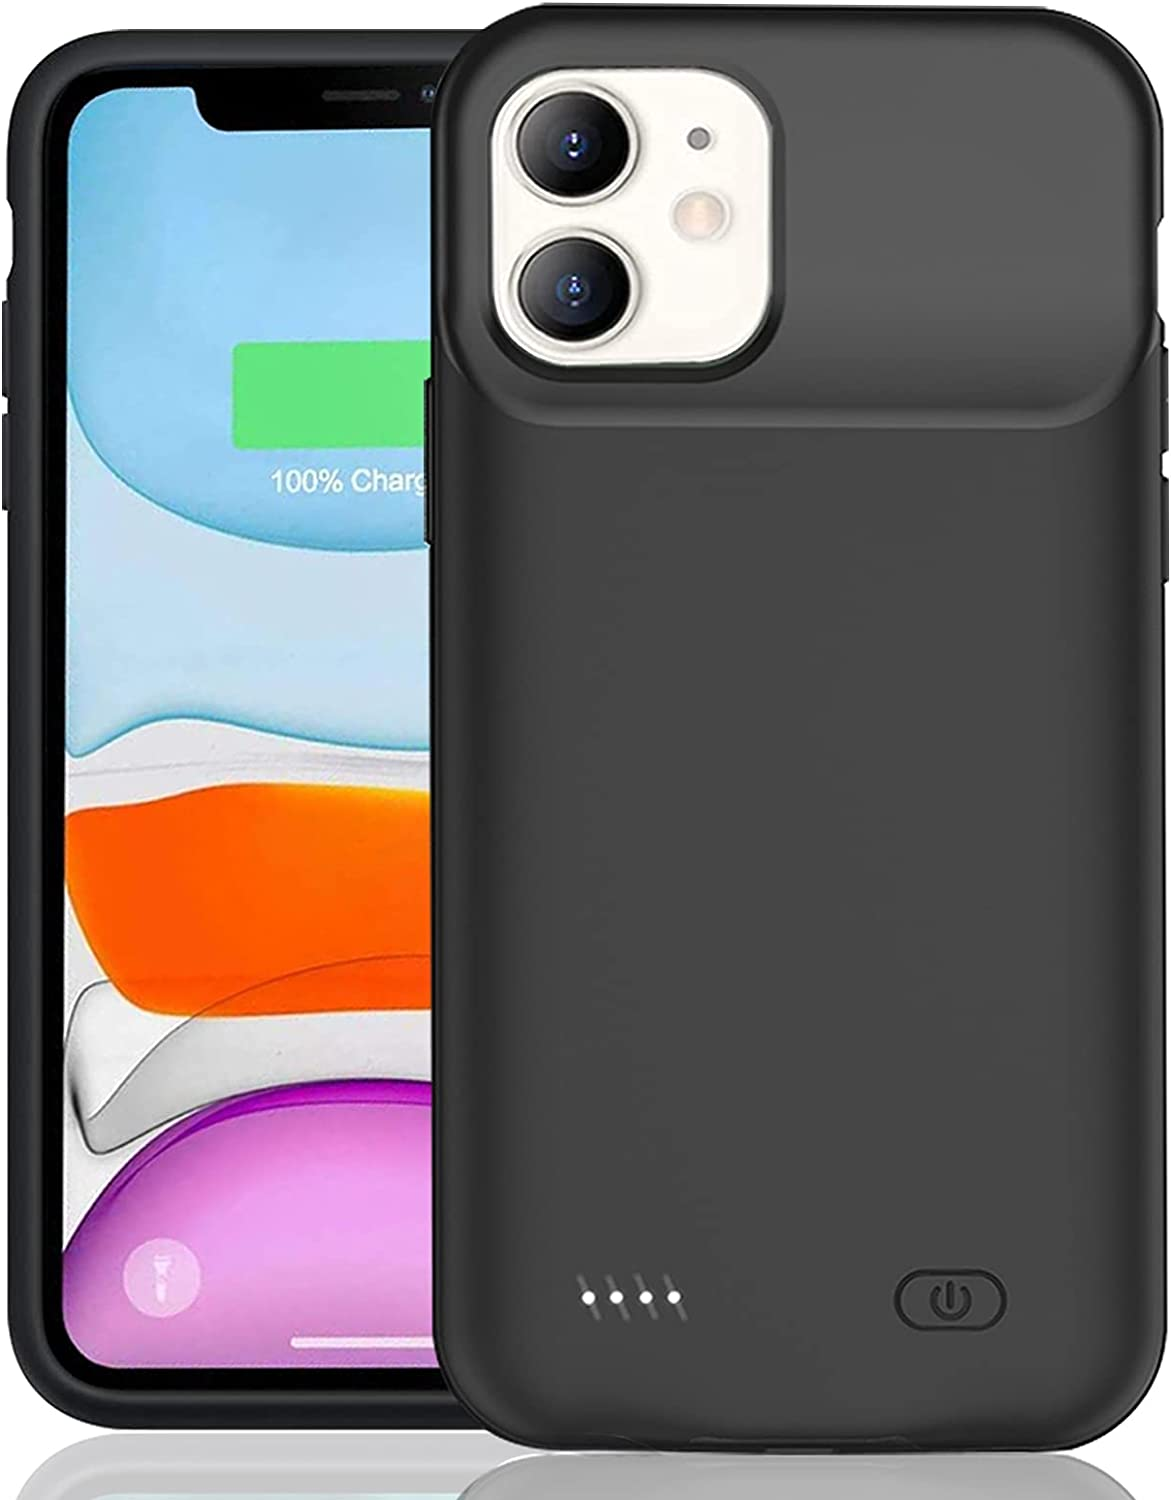 Battery Case for iPhone 11, Enhanced 7000mAh Smart Rechargeable Portable Protective Charging Case Extended Battery Backup Pack Compatible with iPhone 11 (6.1 inch) Charger Case (Black)